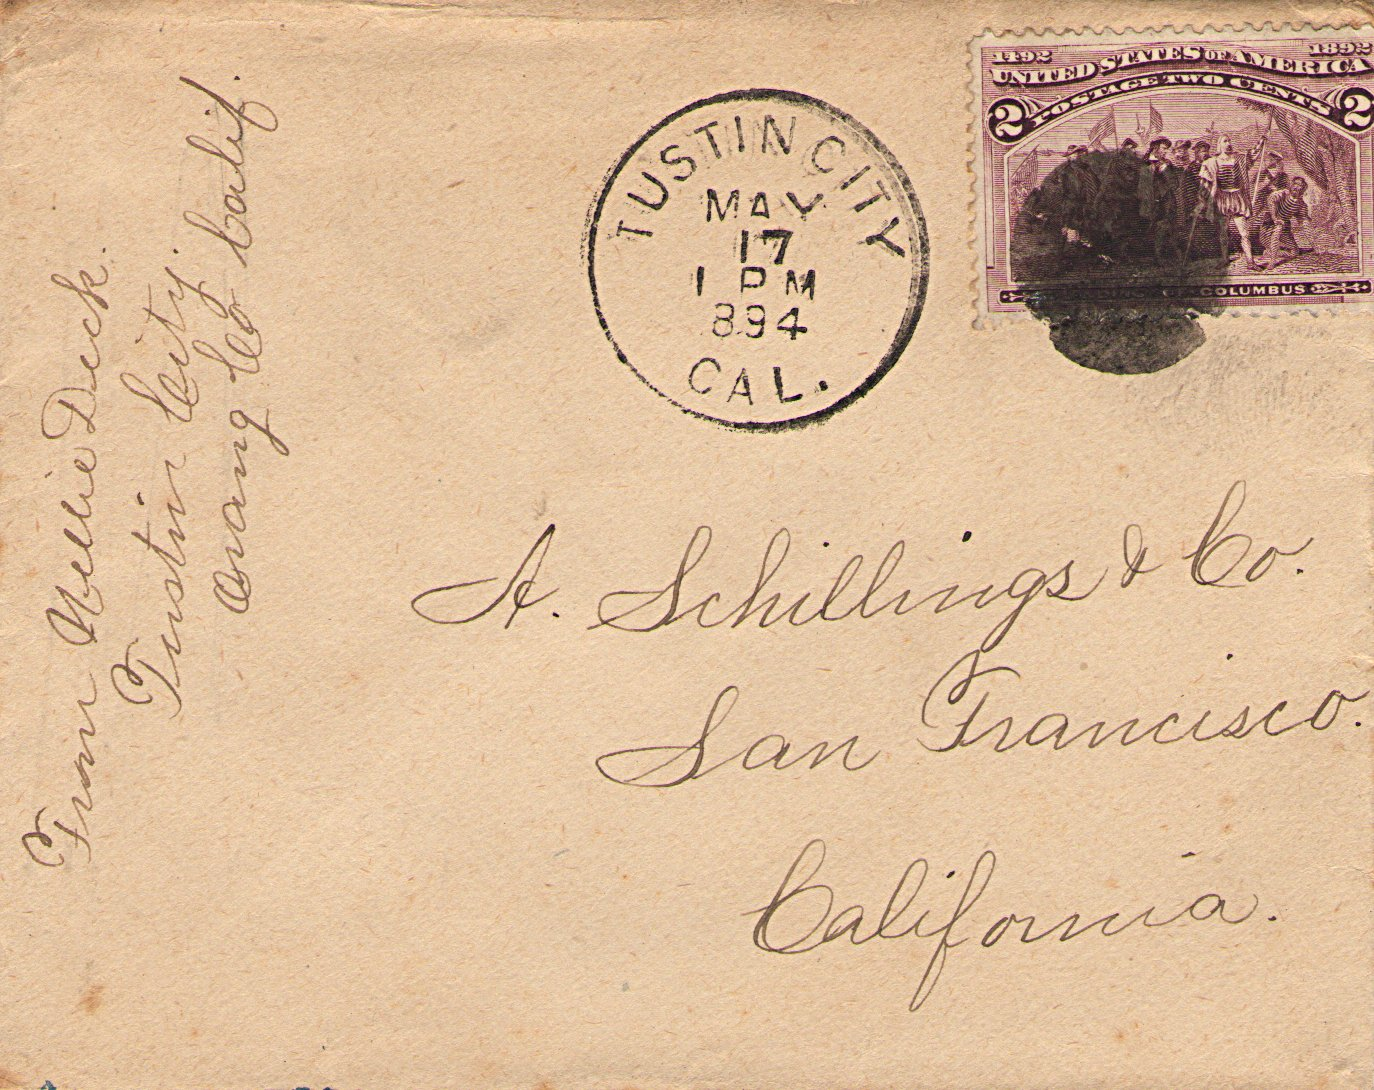 Cover Mailed From Tustin City, California